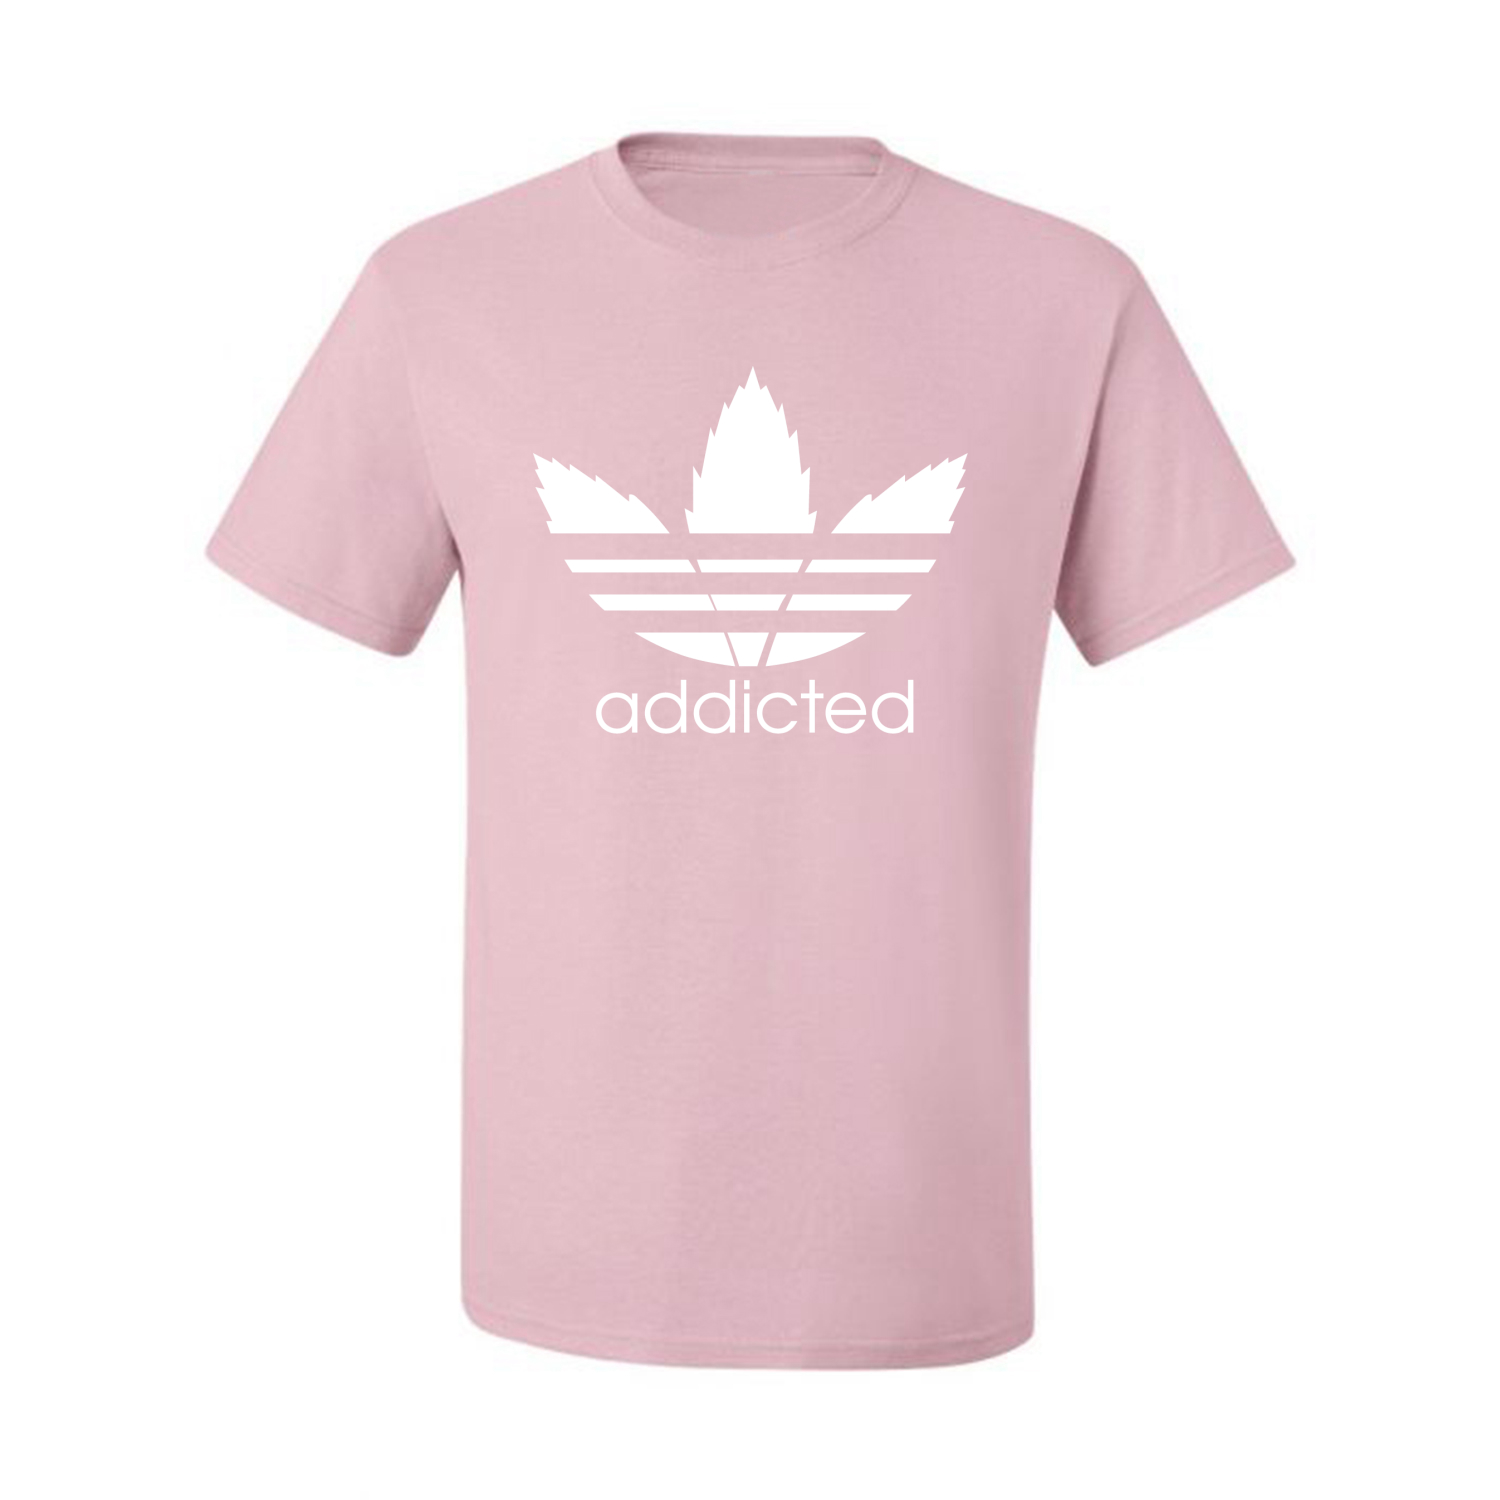 Addicted-White-Pot-Leaf-Mens-Weed-T-Shirt-Graphic-Parody-Tee thumbnail 18